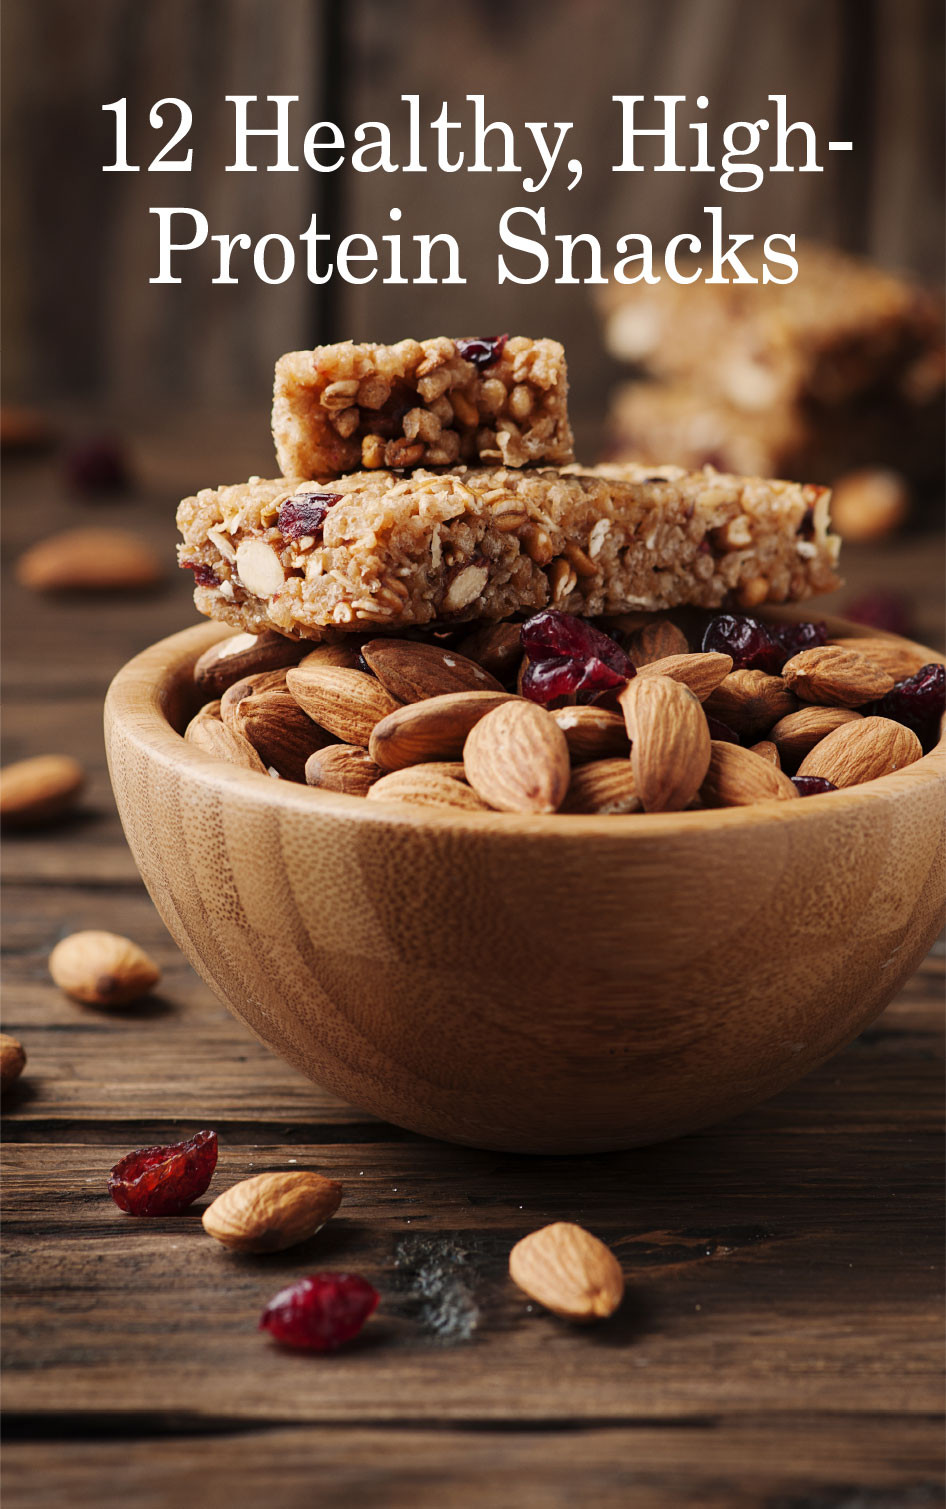 Healthy Snacks High In Protein  12 Healthy High Protein Snacks Flatoutbread